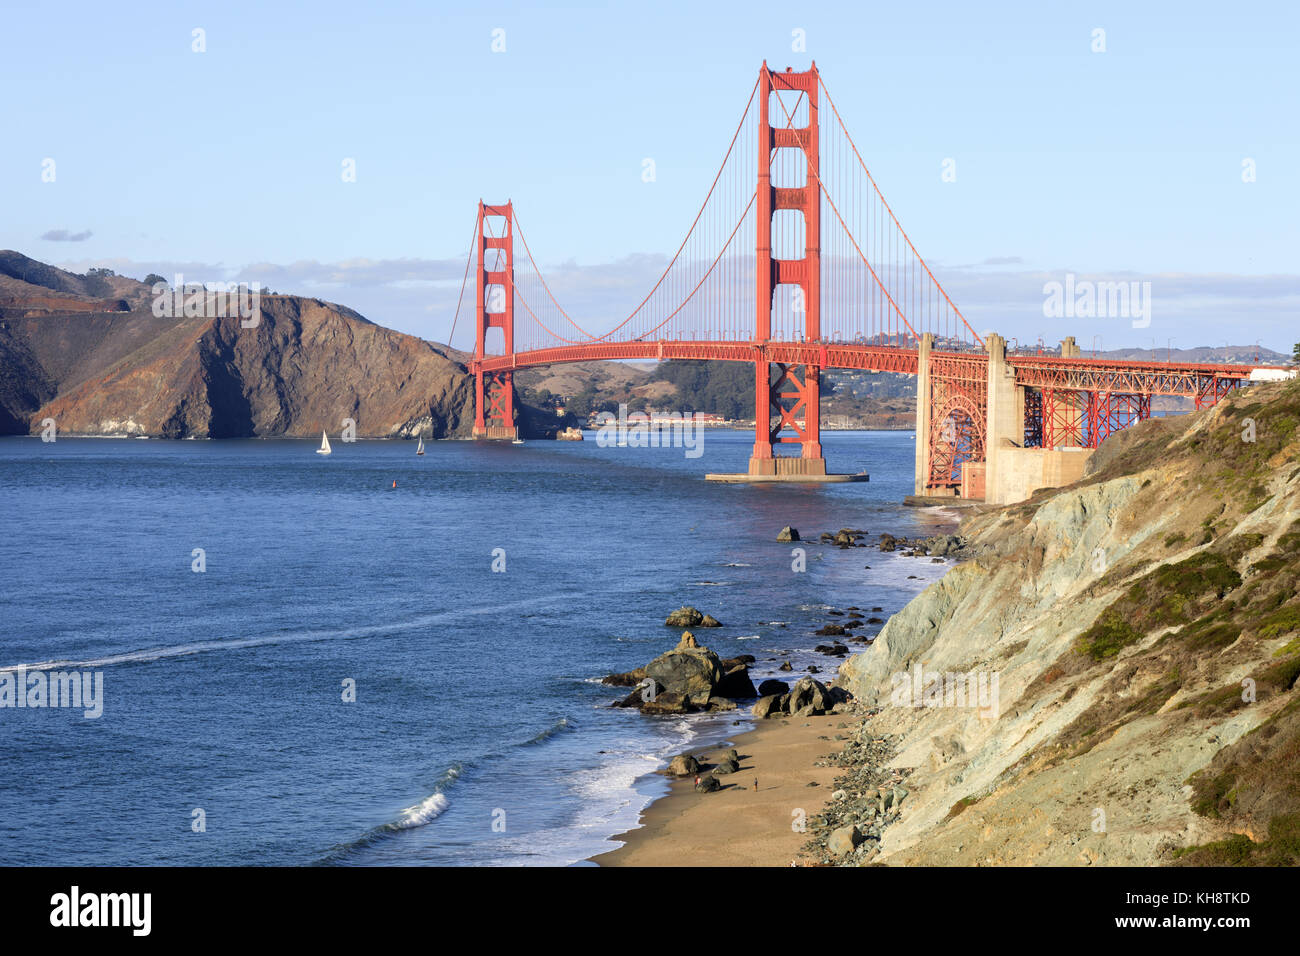 Golden Gate Bridge and Baker Beach on a clear autumn sunny day. - Stock Image